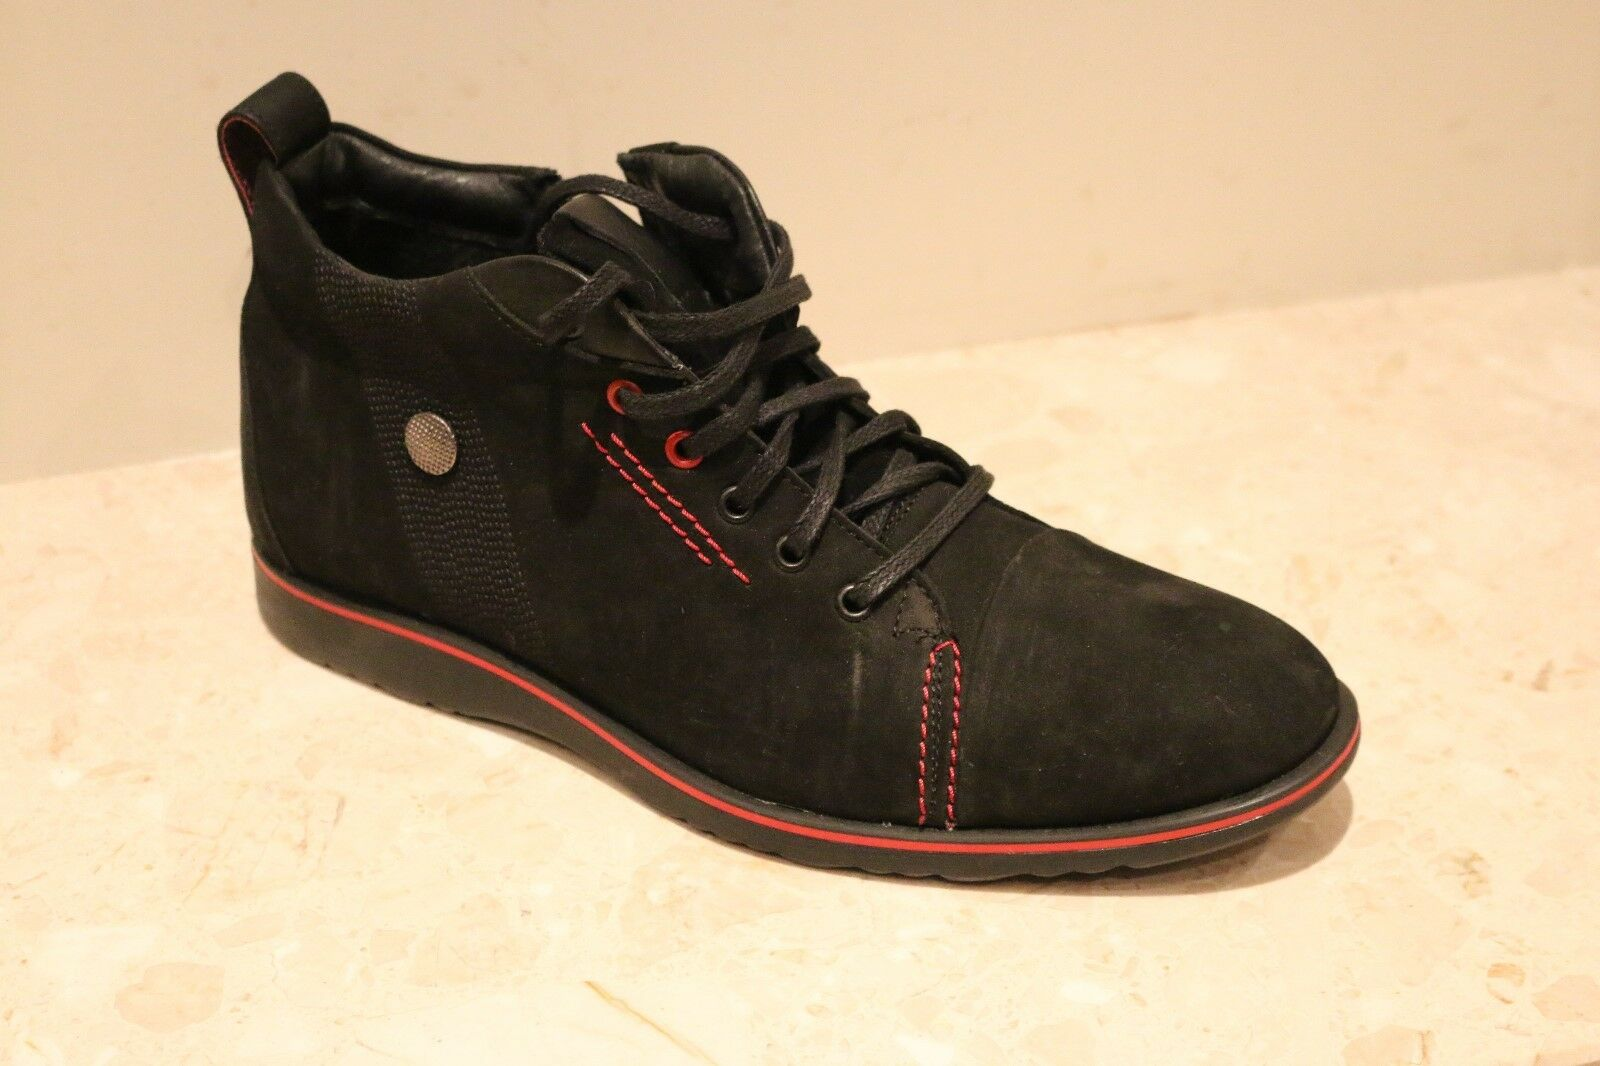 LEMAR  100% MENS LEATHER SHOES CASUAL FORMAL CAN WEAR WITH THE JEANS ON,USE FO